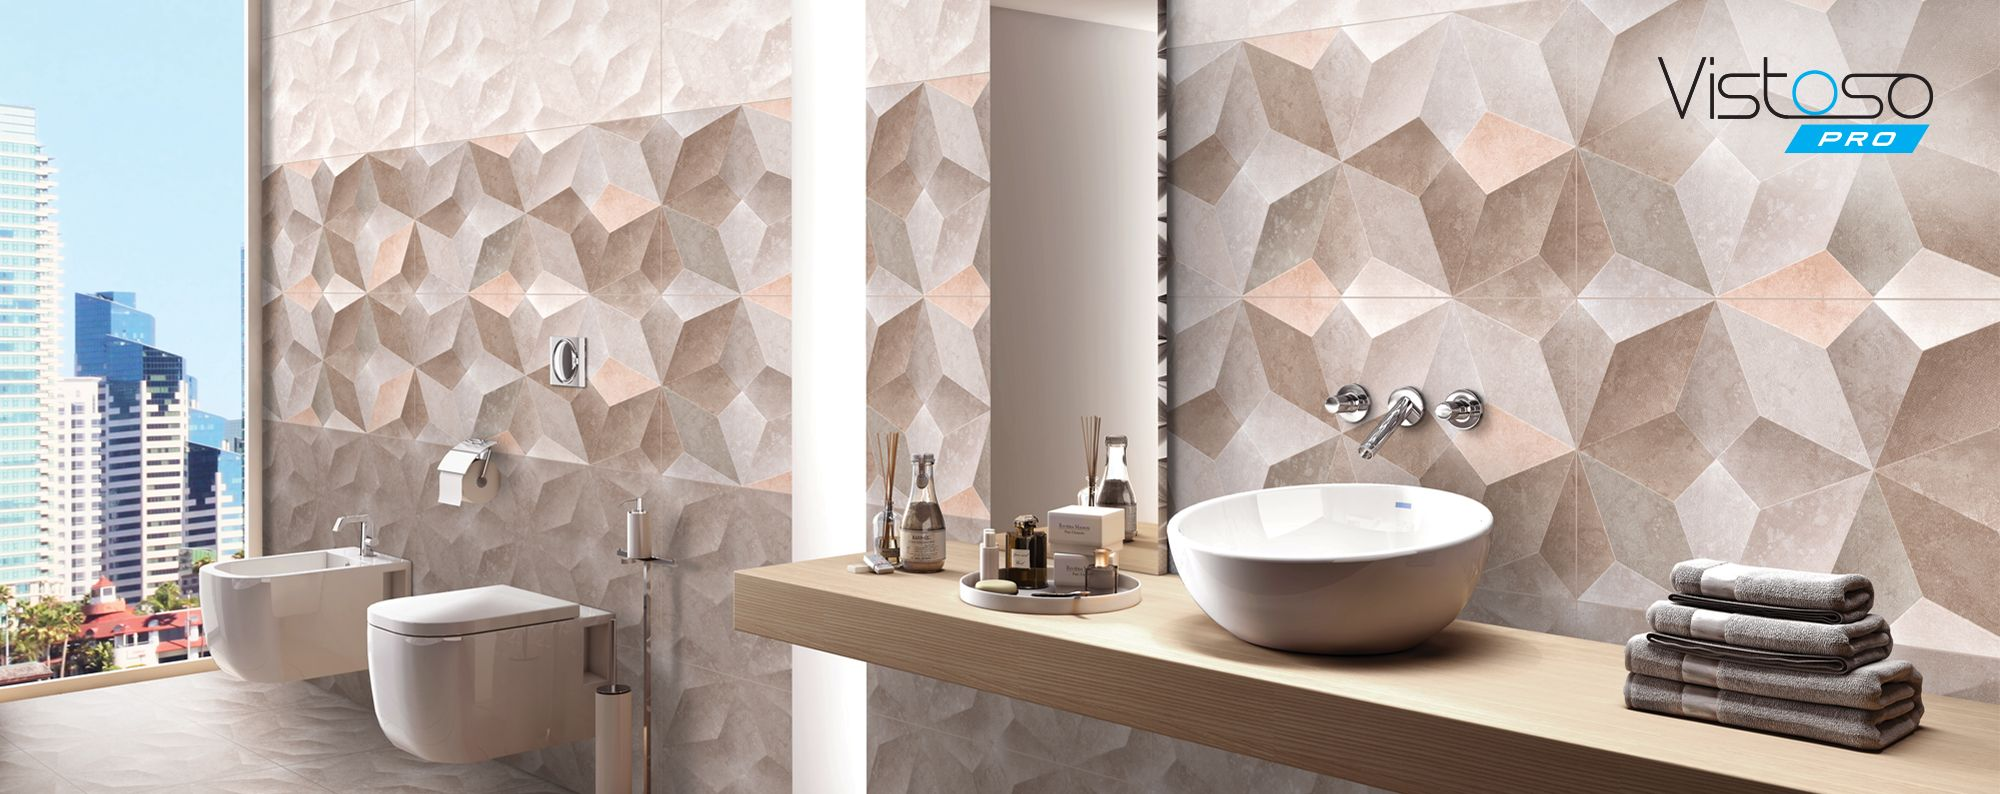 Largest Collection Of Ceramic Wall Tiles Design In India - Somany Ceramics